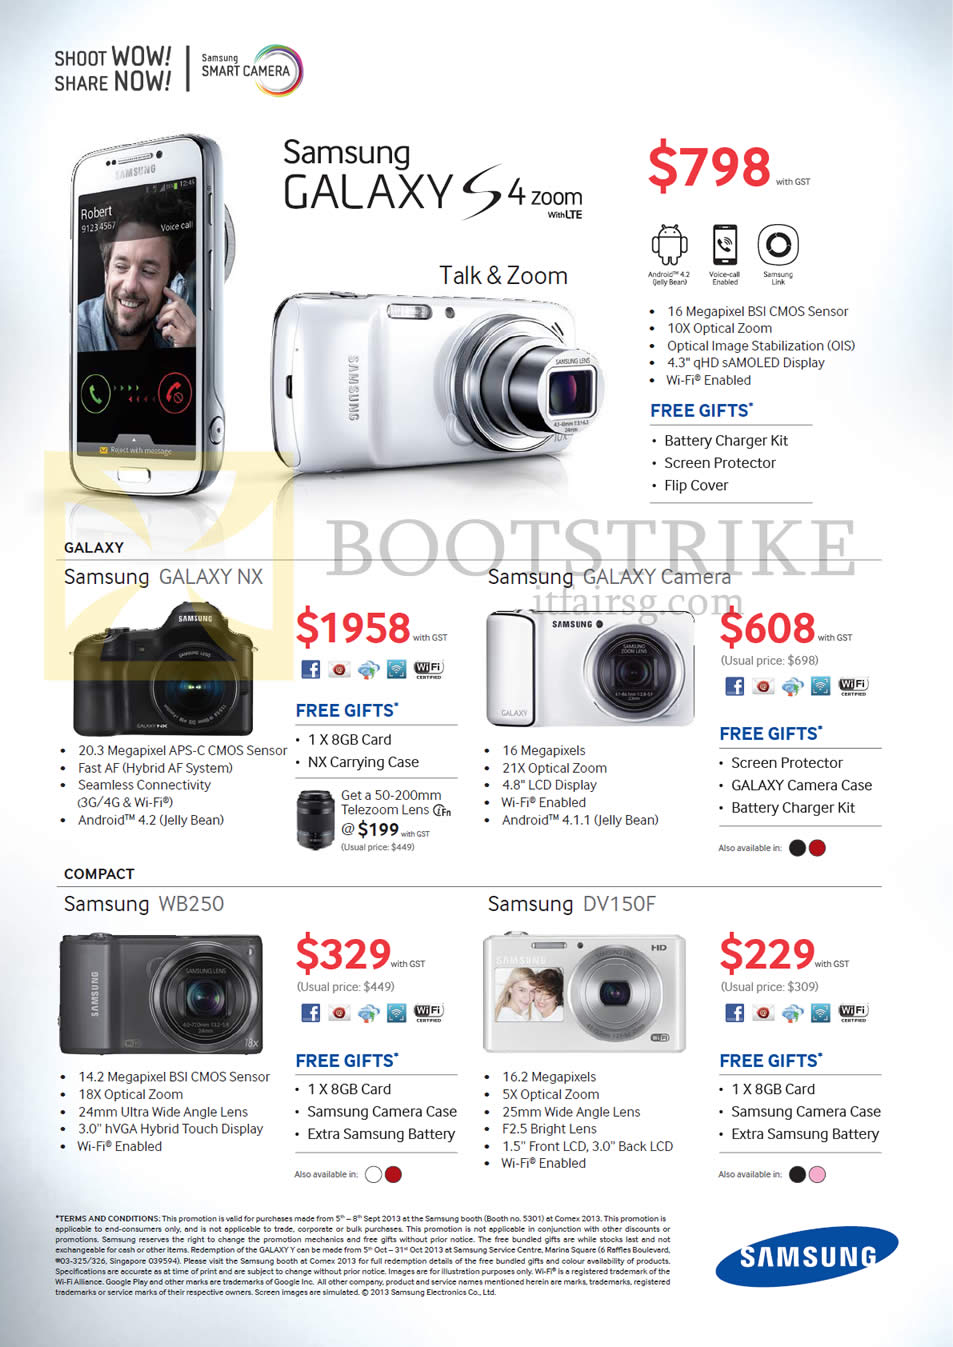 COMEX 2013 price list image brochure of Samsung Digital Cameras Galaxy S4 Zoom, Galaxy NX, Galaxy Camera, WB250, DV150F